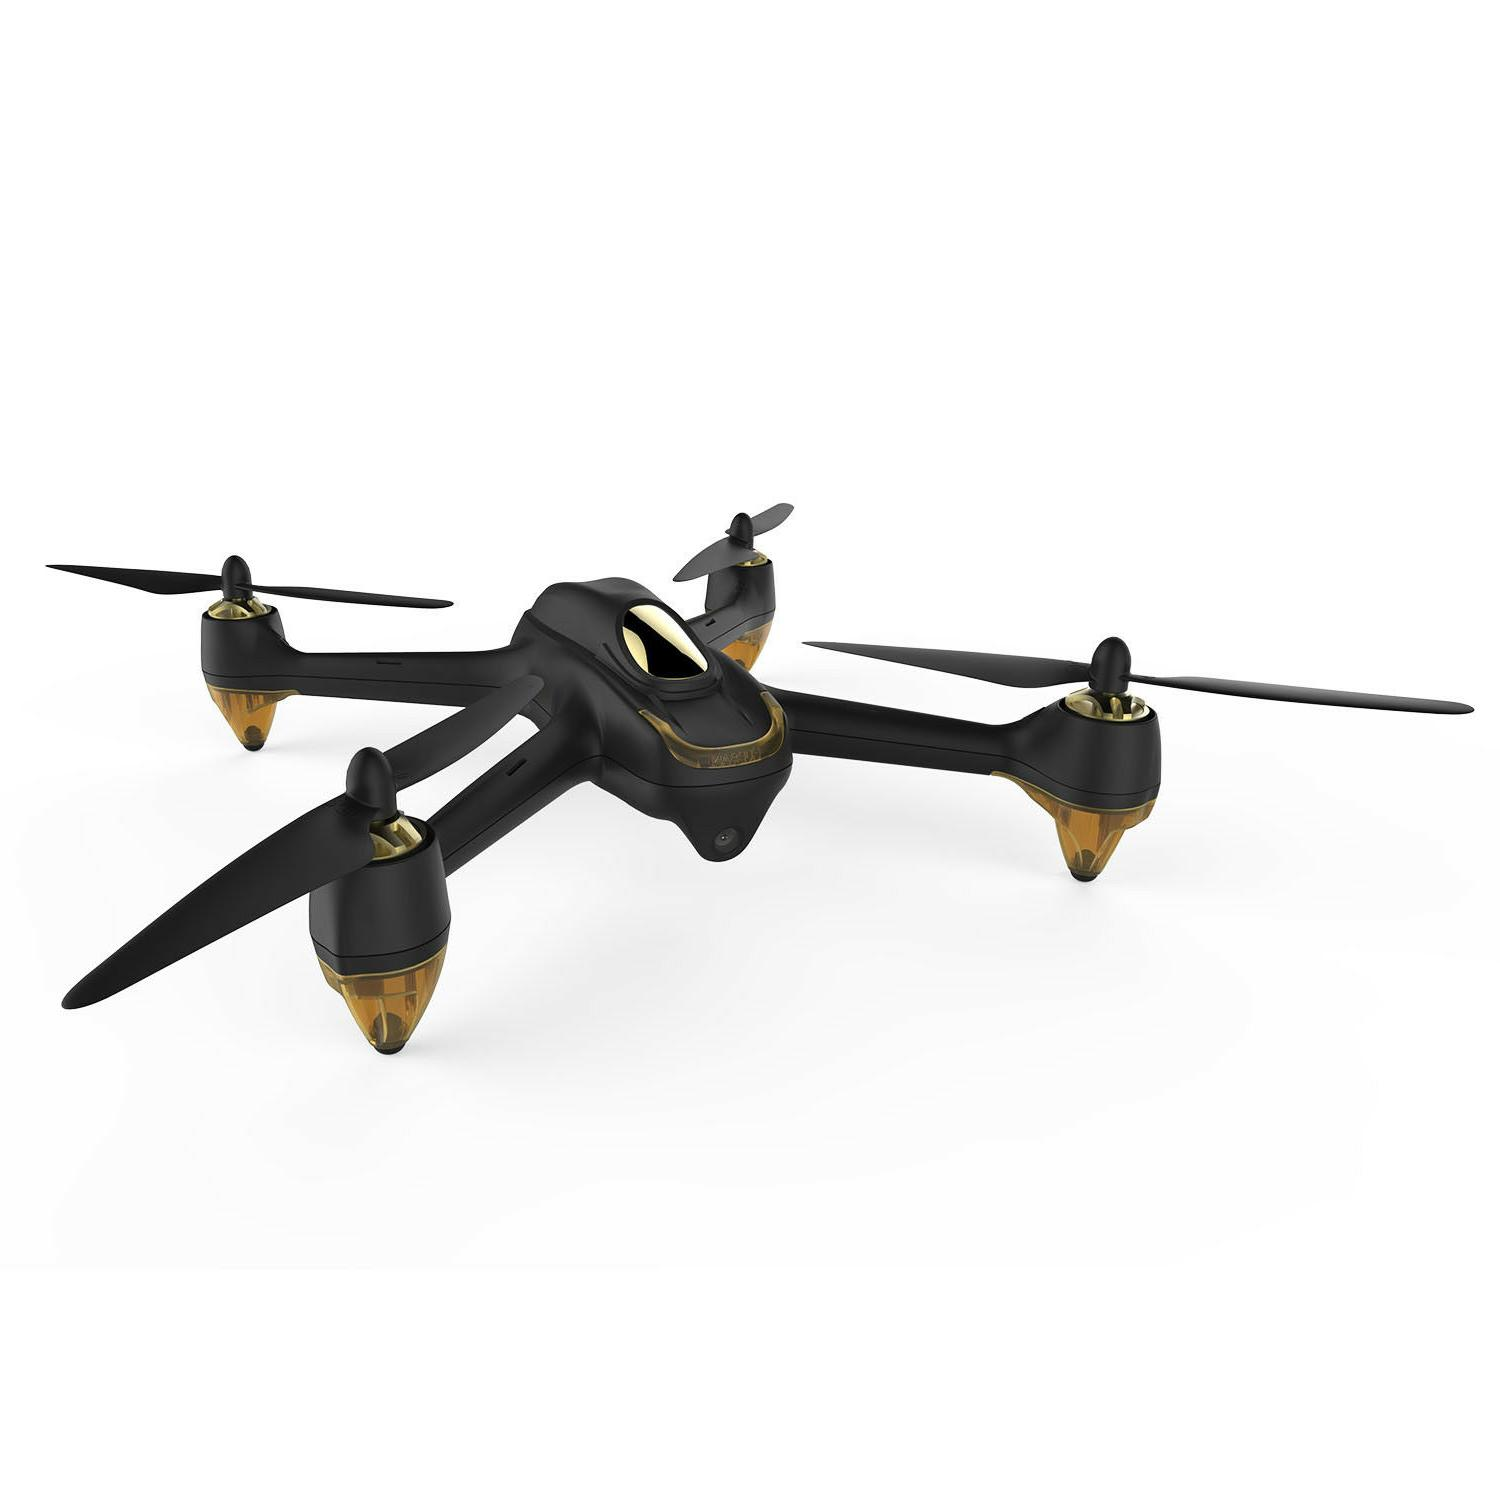 Hubsan H501S Drone GPS Quadcopter 1080P Camera